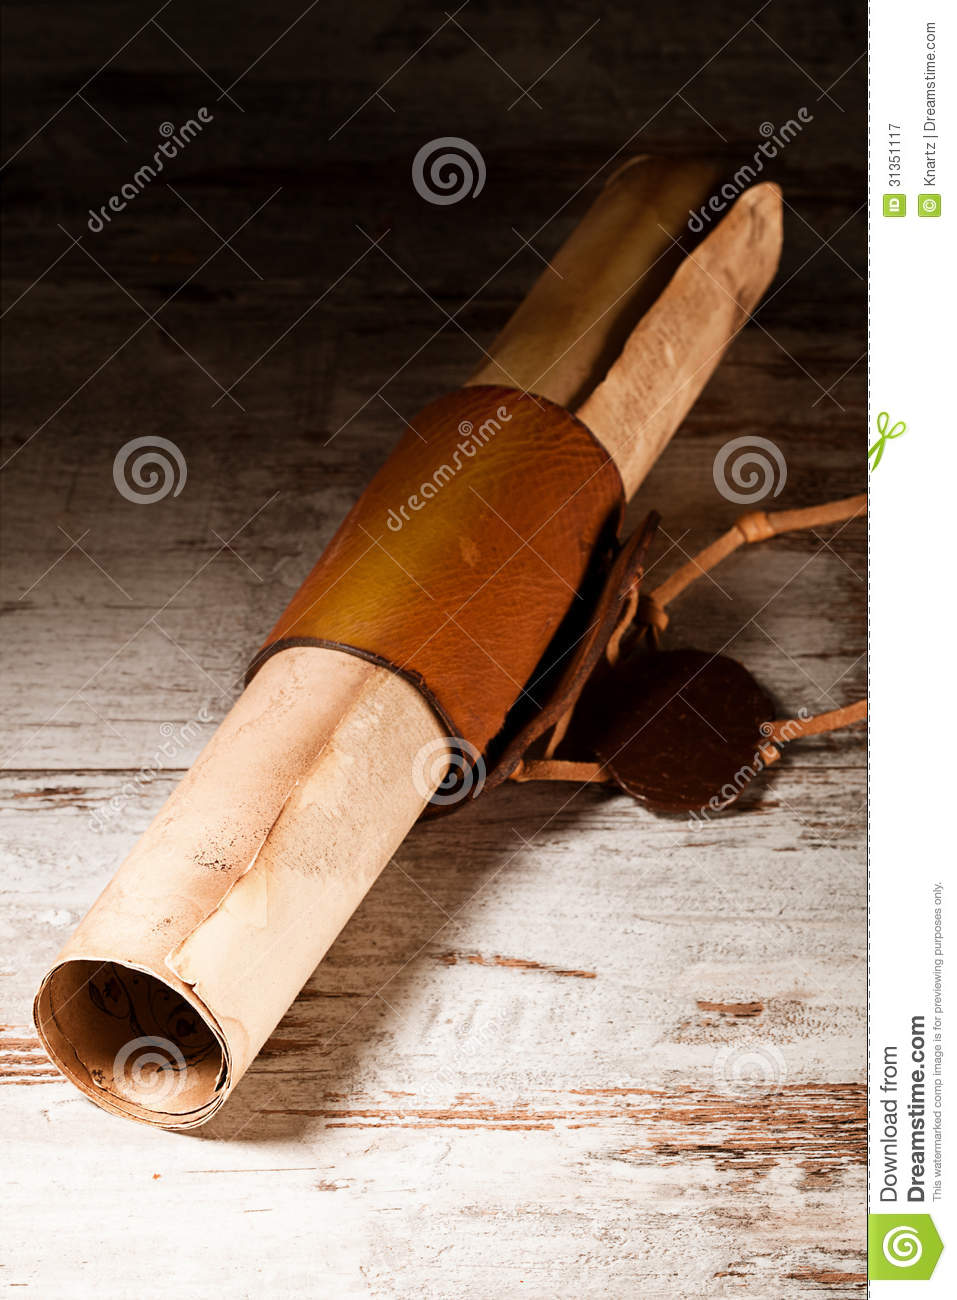 Medieval scroll royalty free stock photography image for Table th no scroll